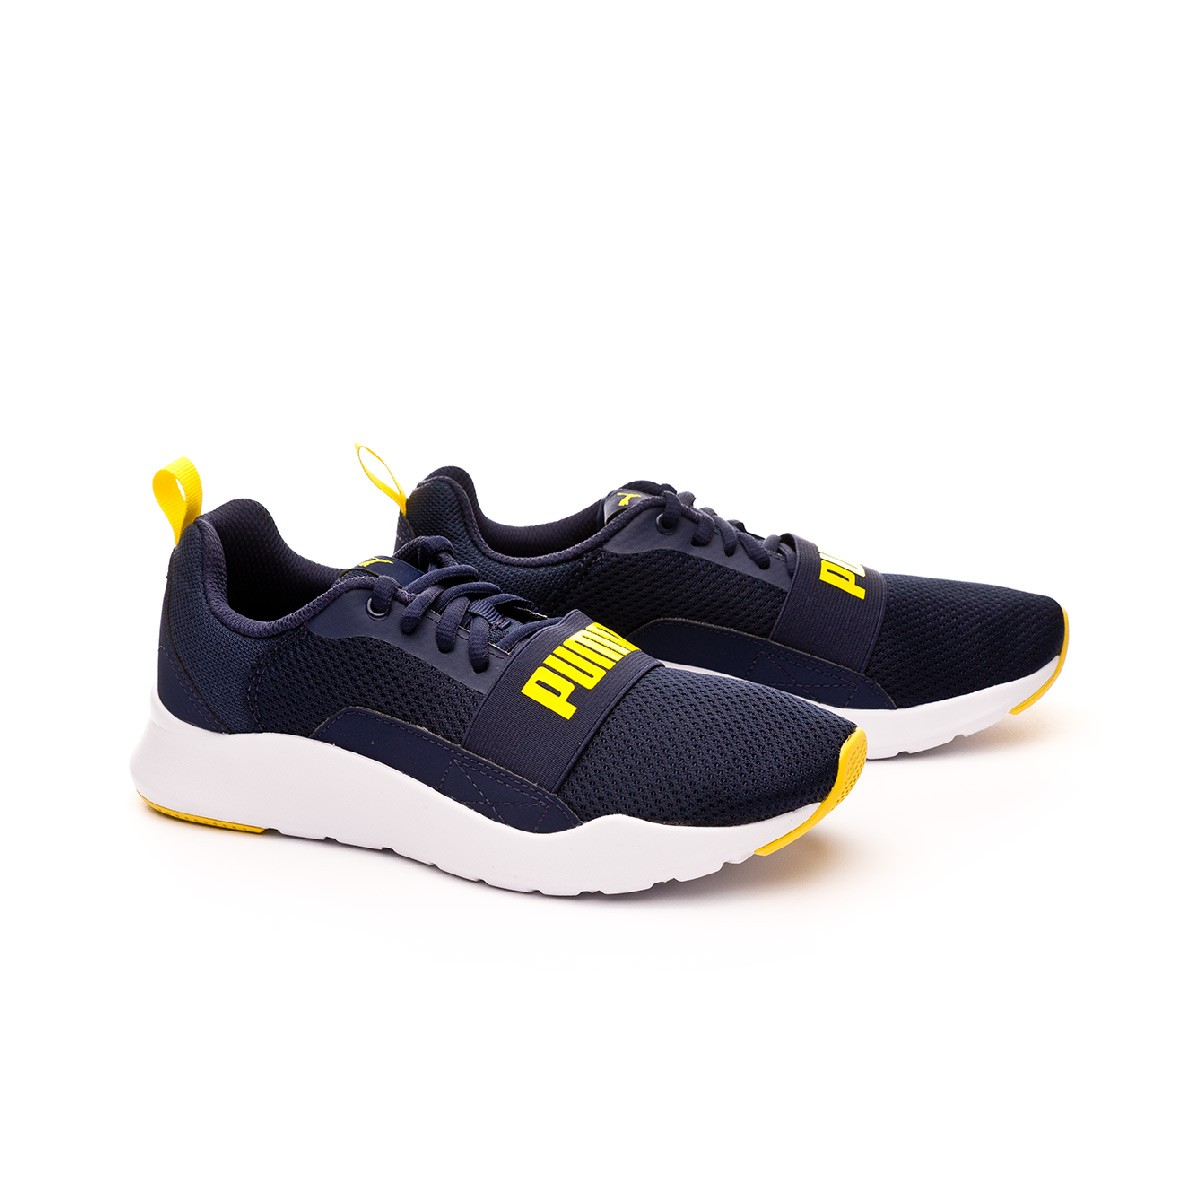 basker puma foot enfant